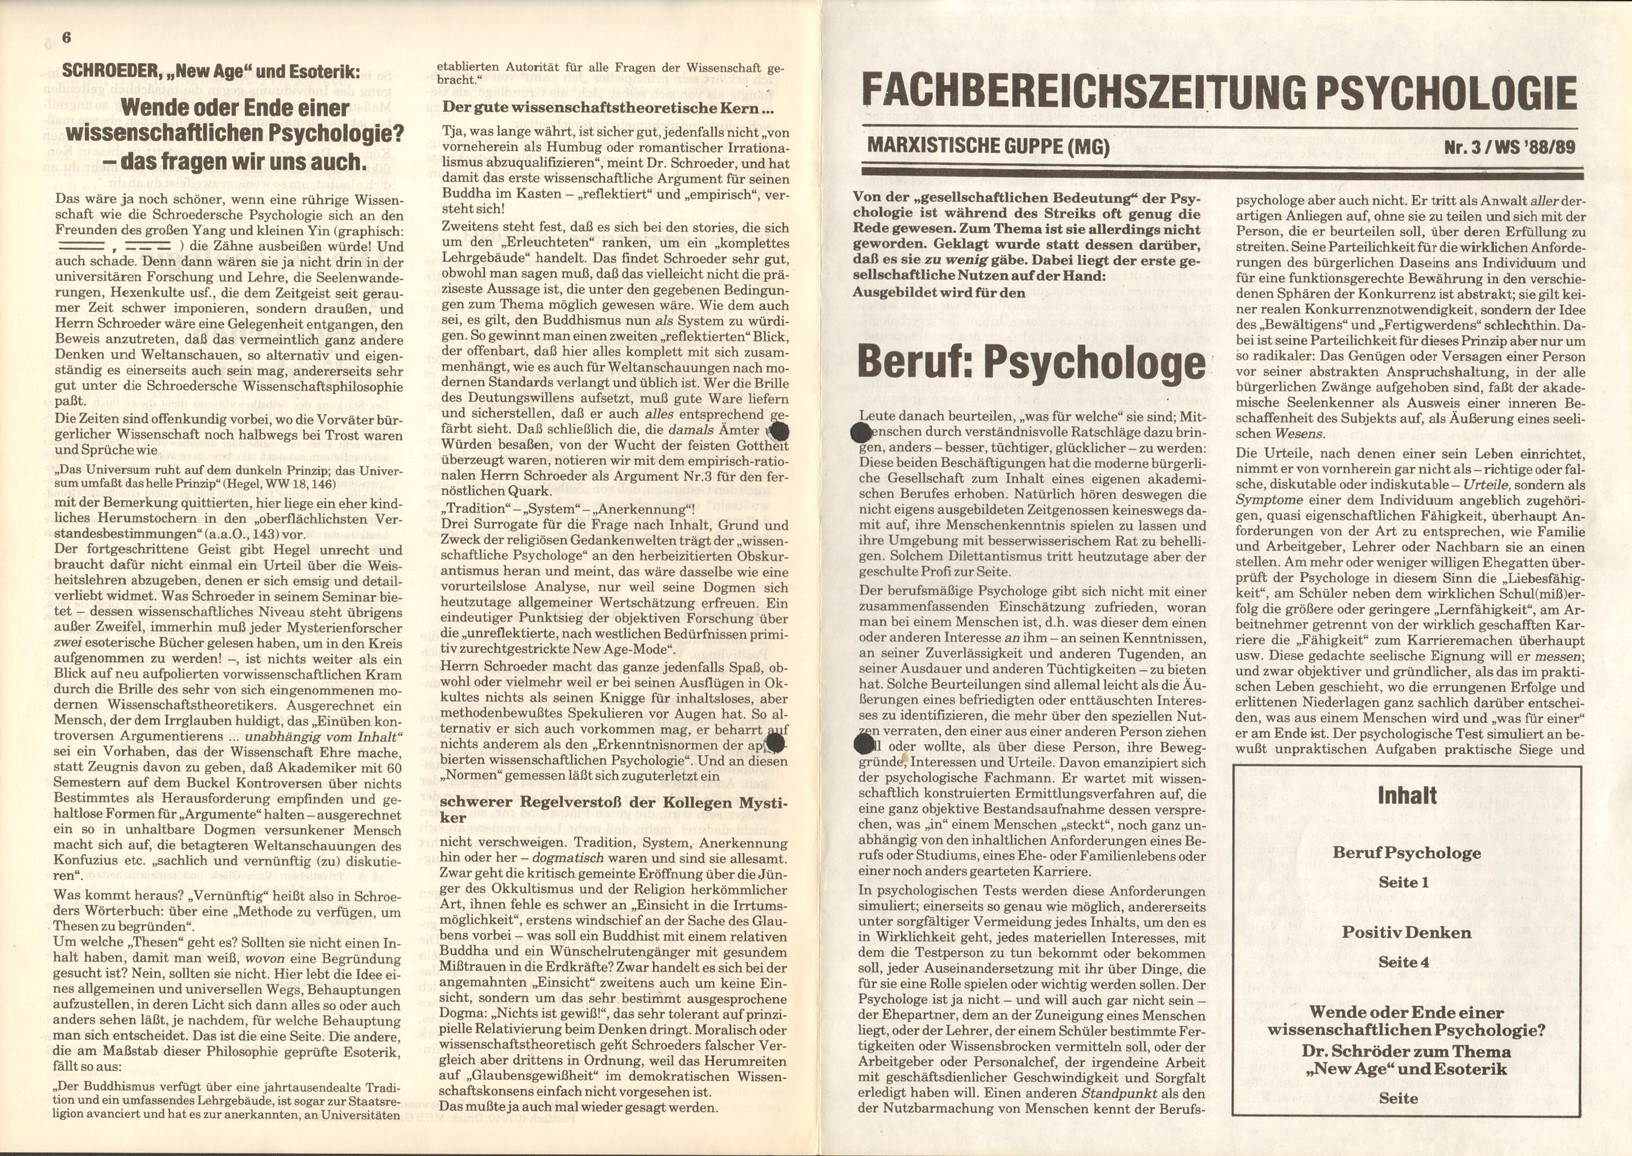 Muenchen_MG_FB_Psychologie_19890200_01